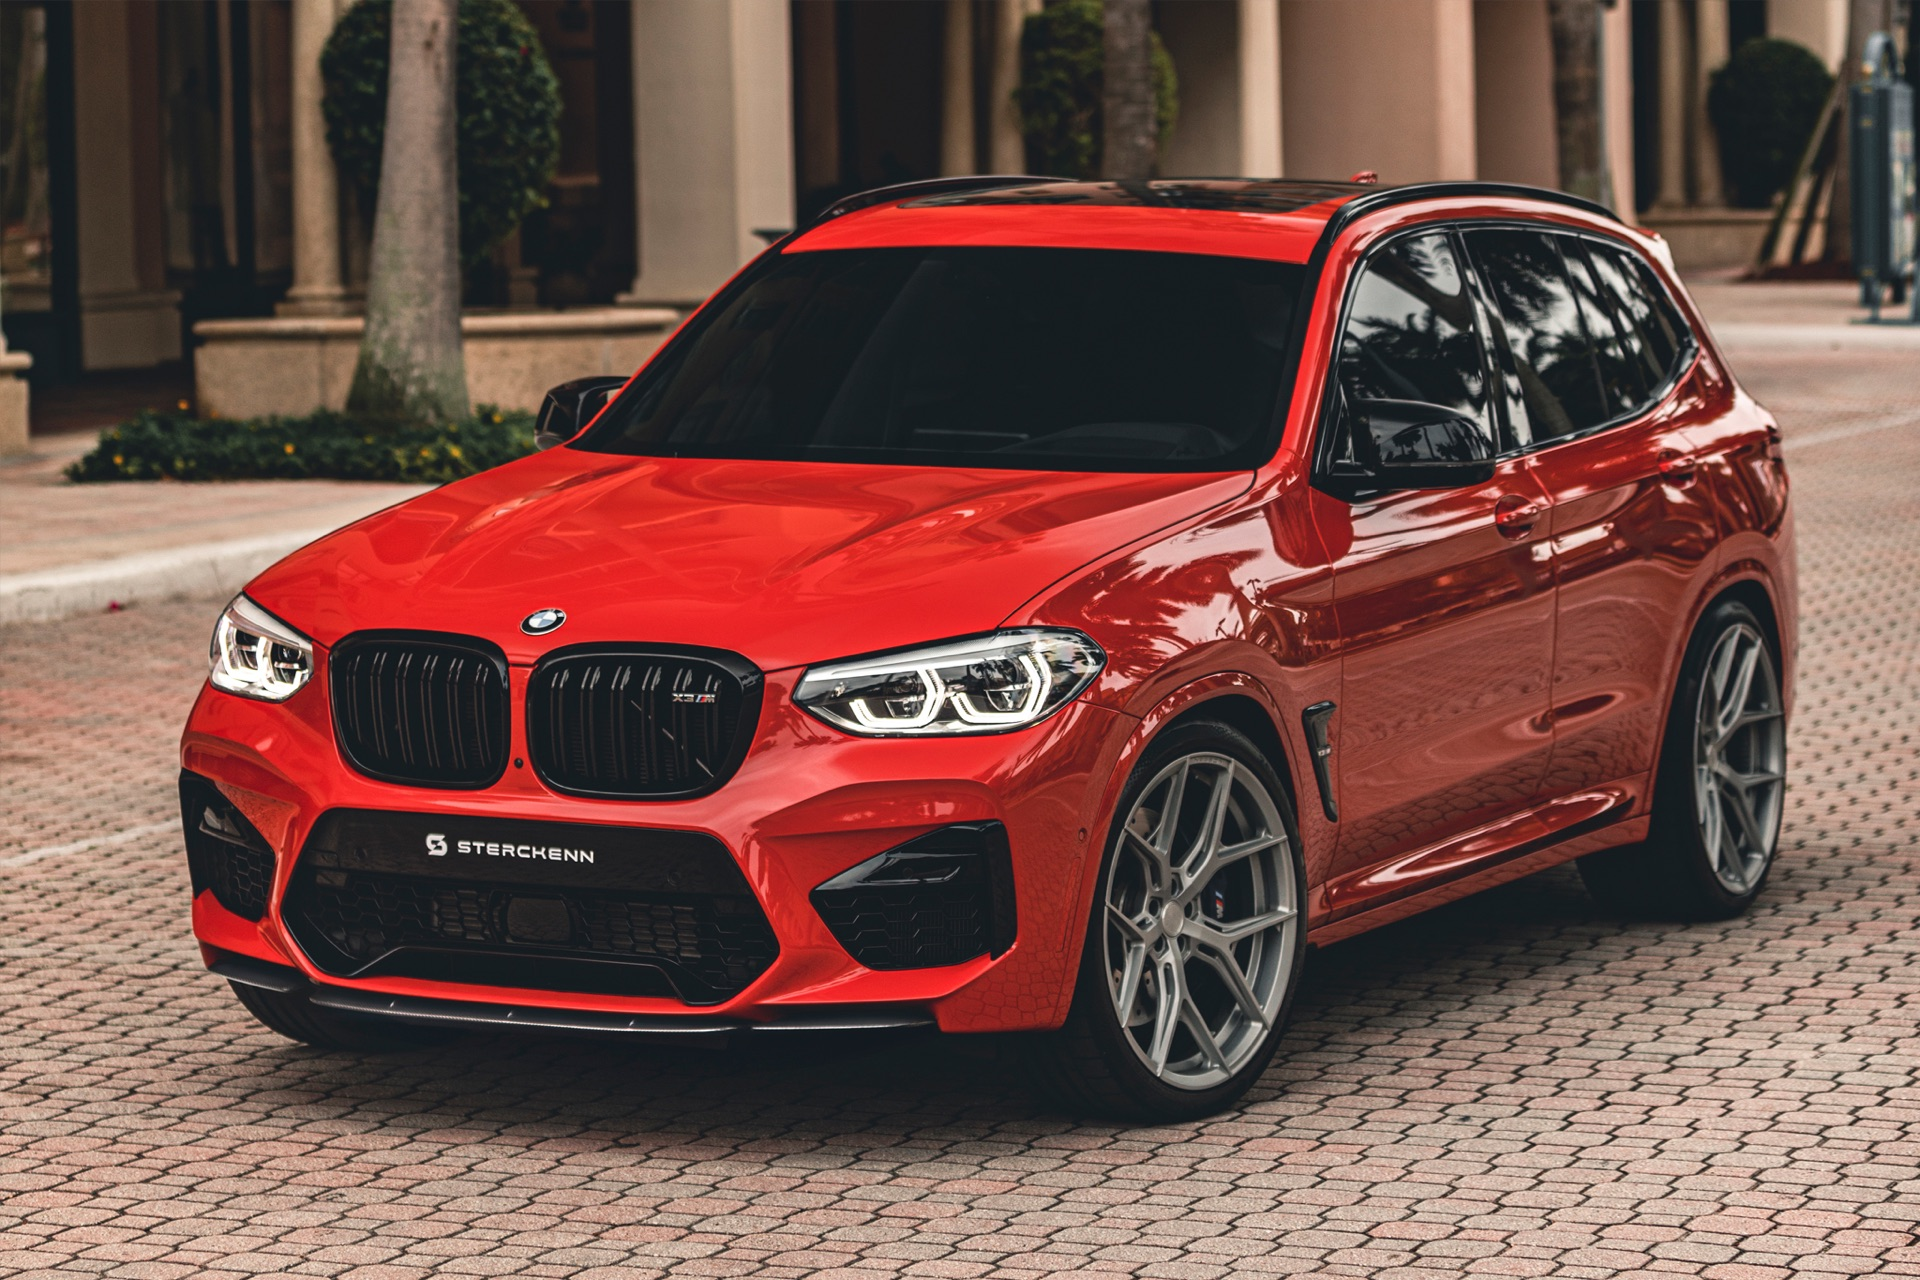 BMW_X3_M_by_Sterckenn_0005